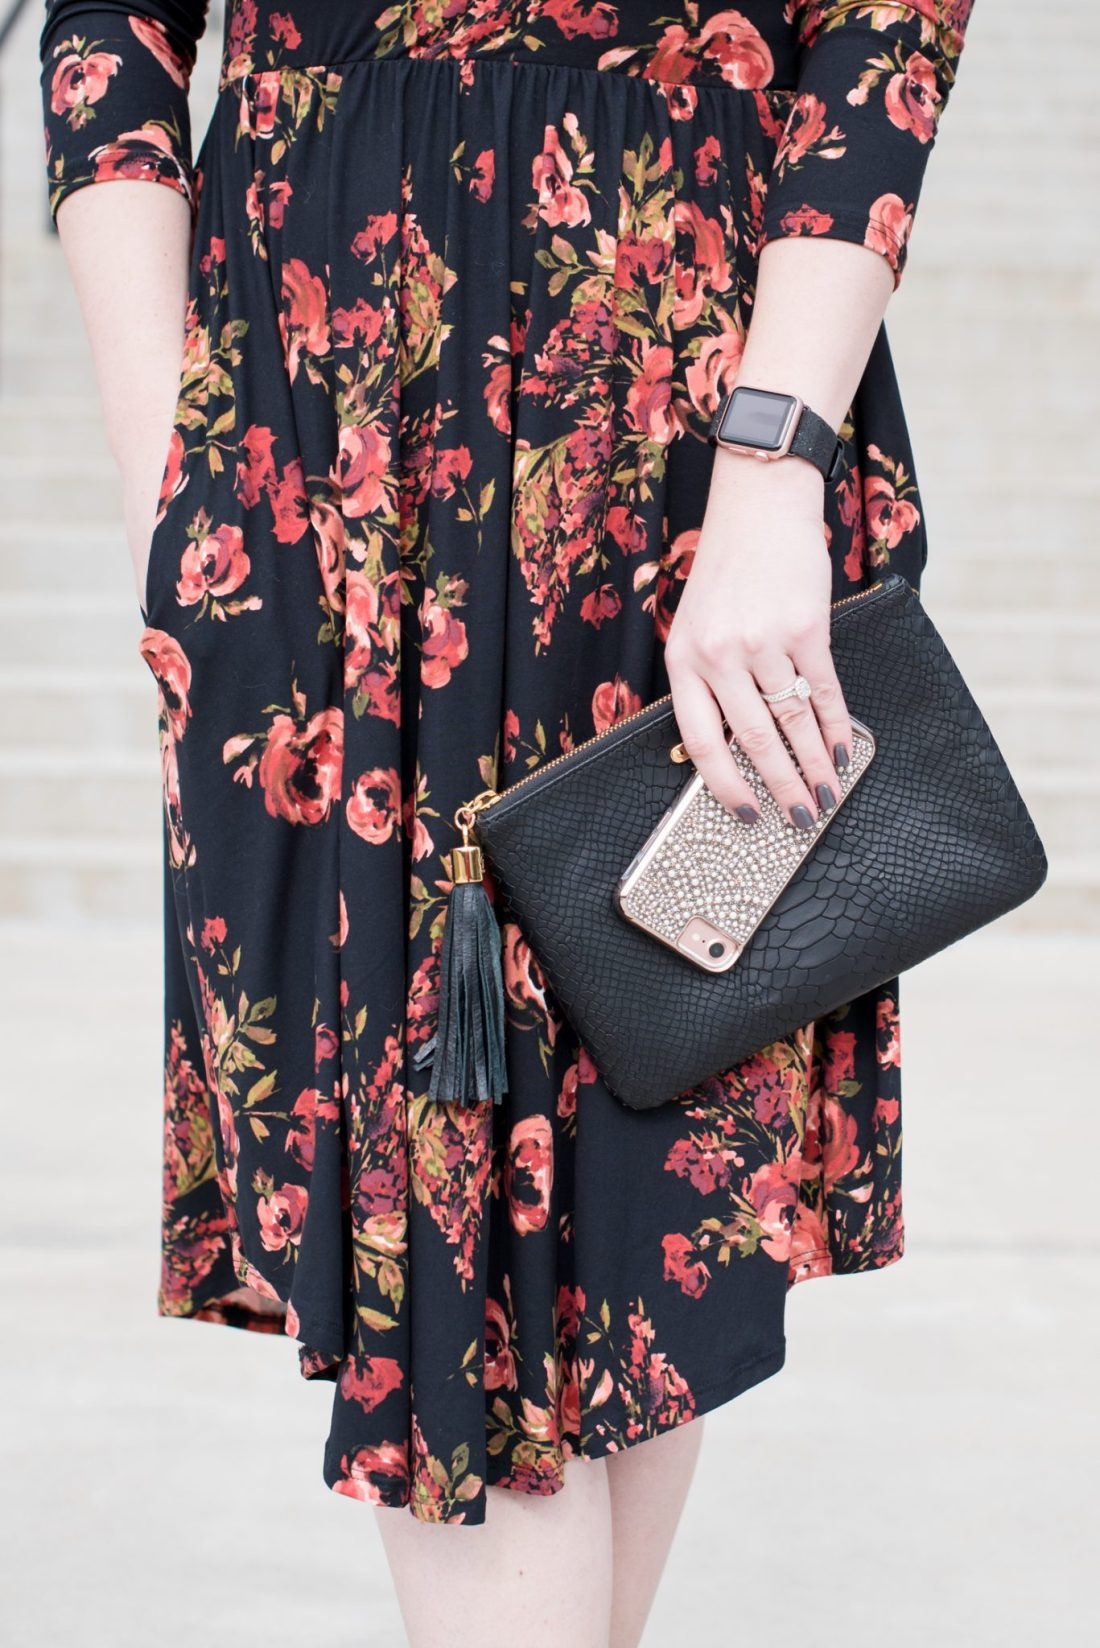 Winter Floral Midi Dress for Galentine's Day via @missmollymoon